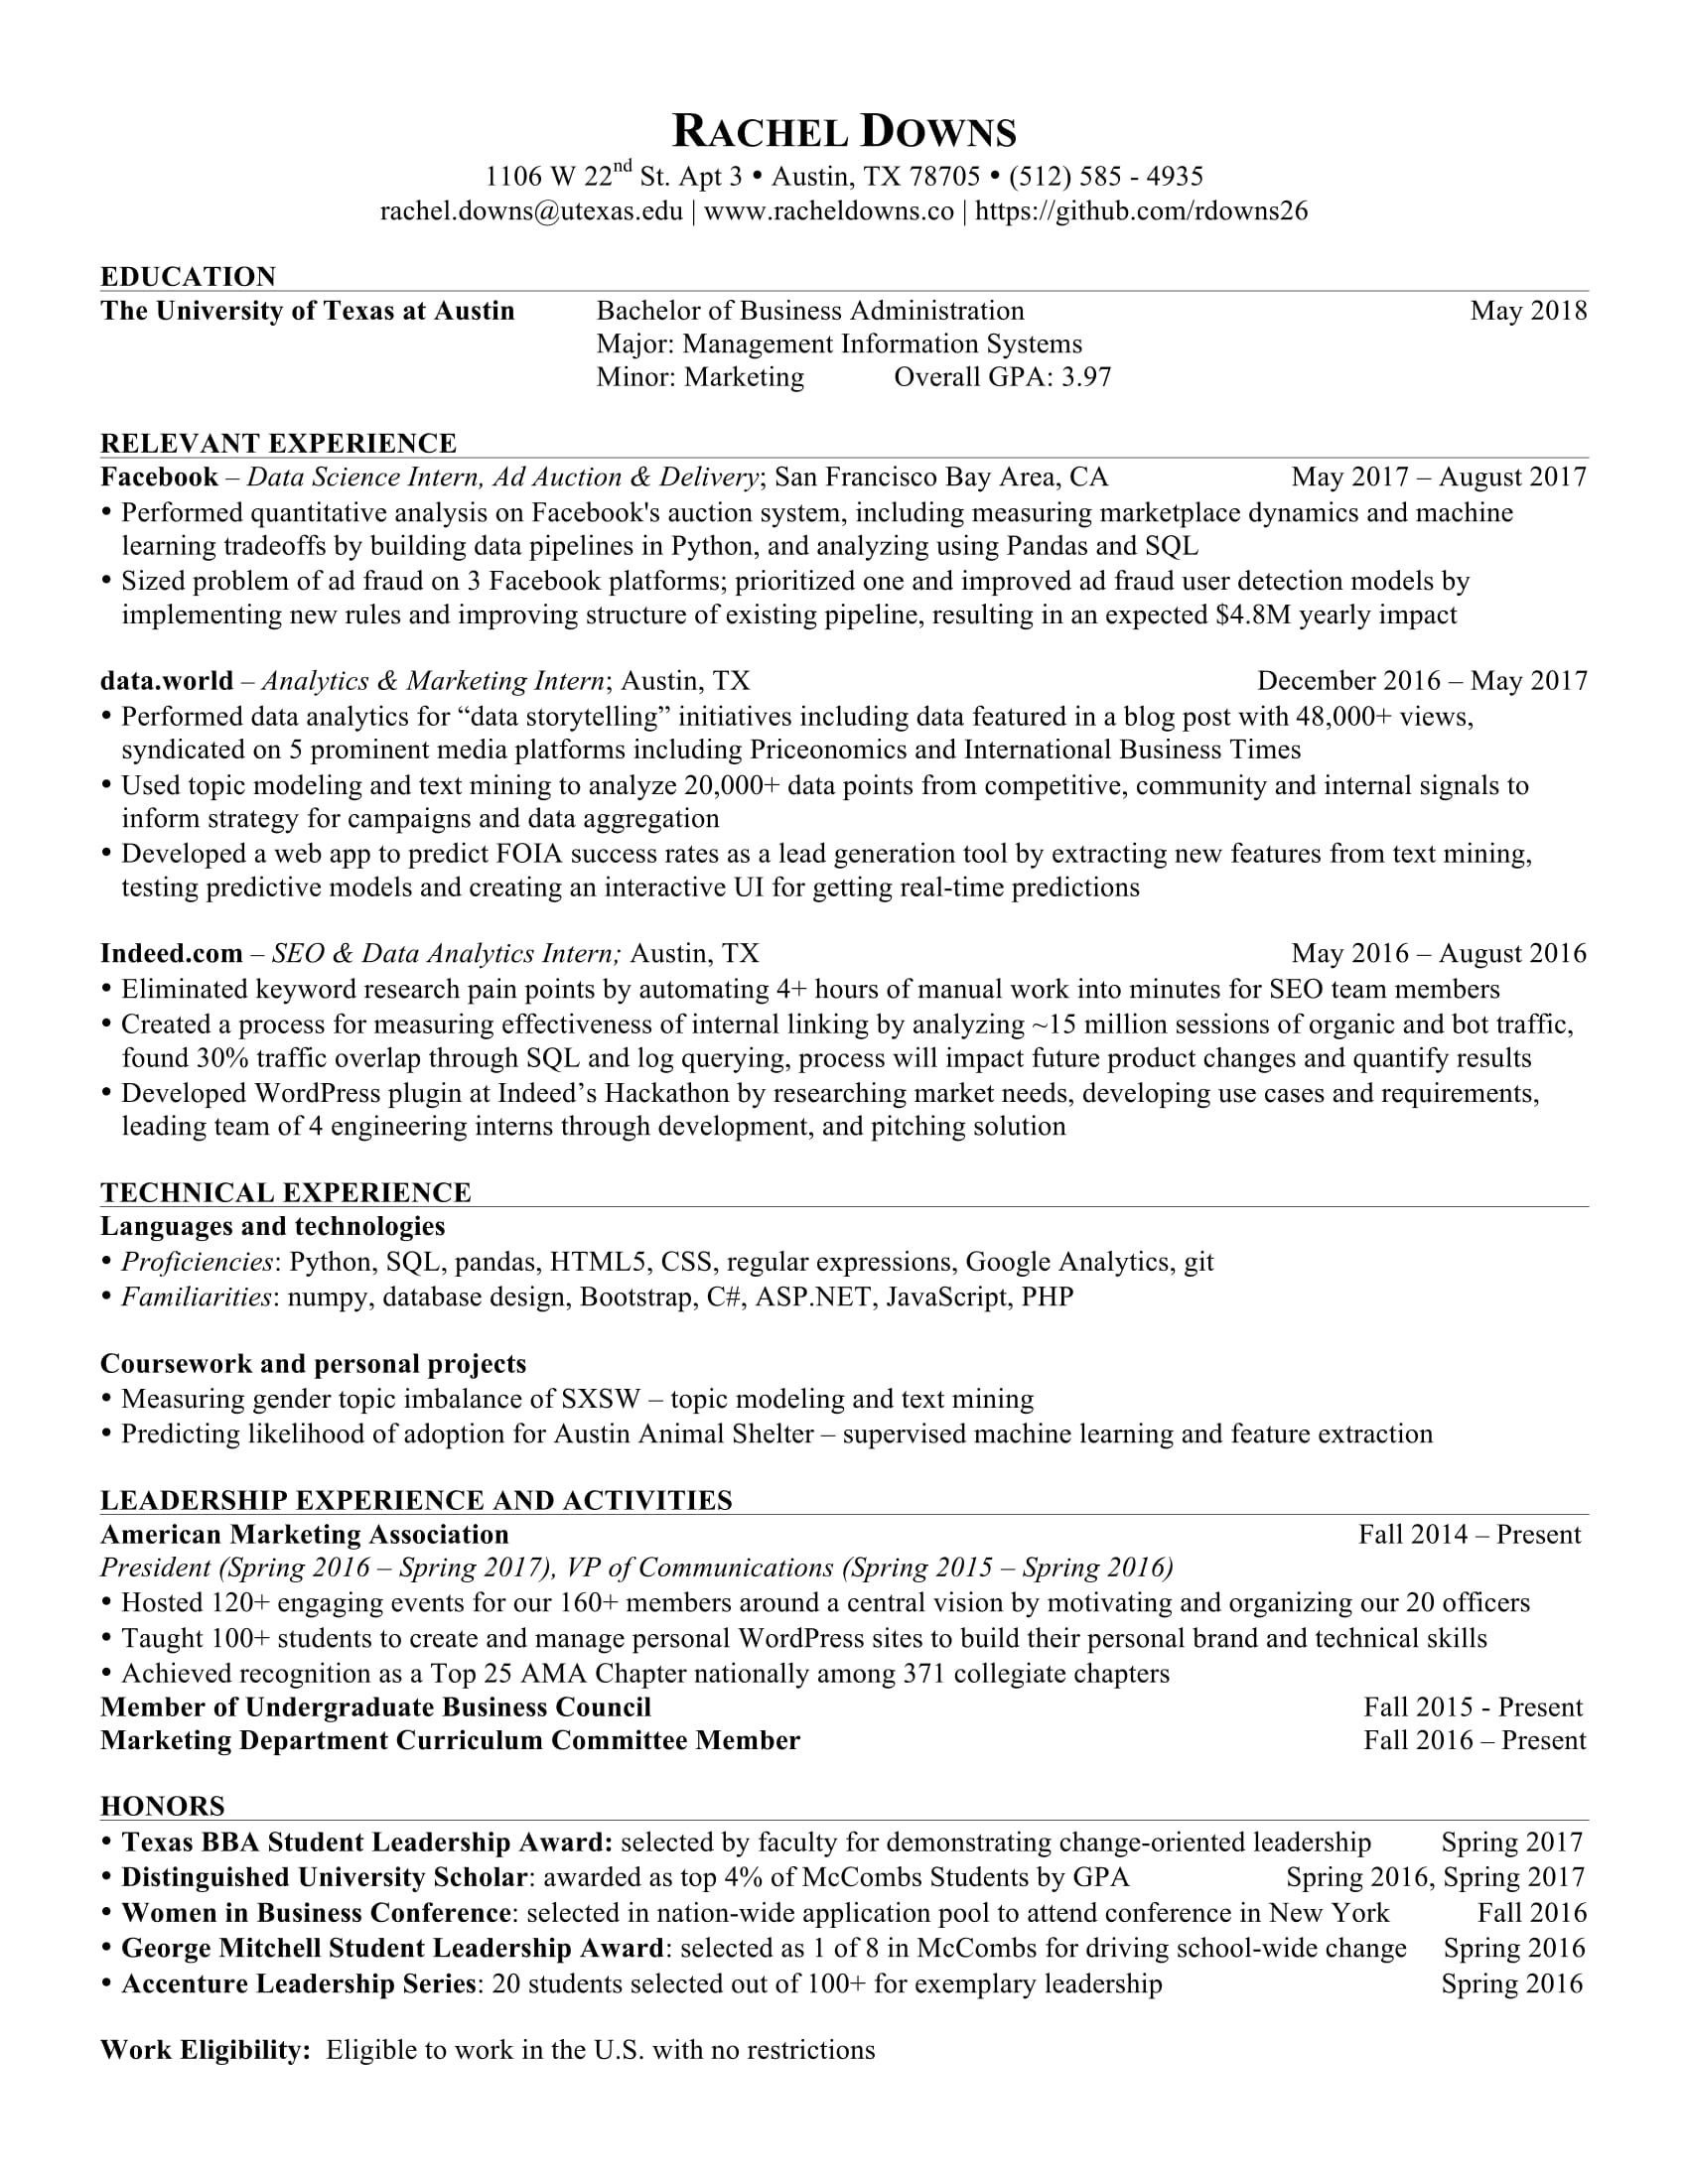 Rachel Downs  Machine Learning Resume